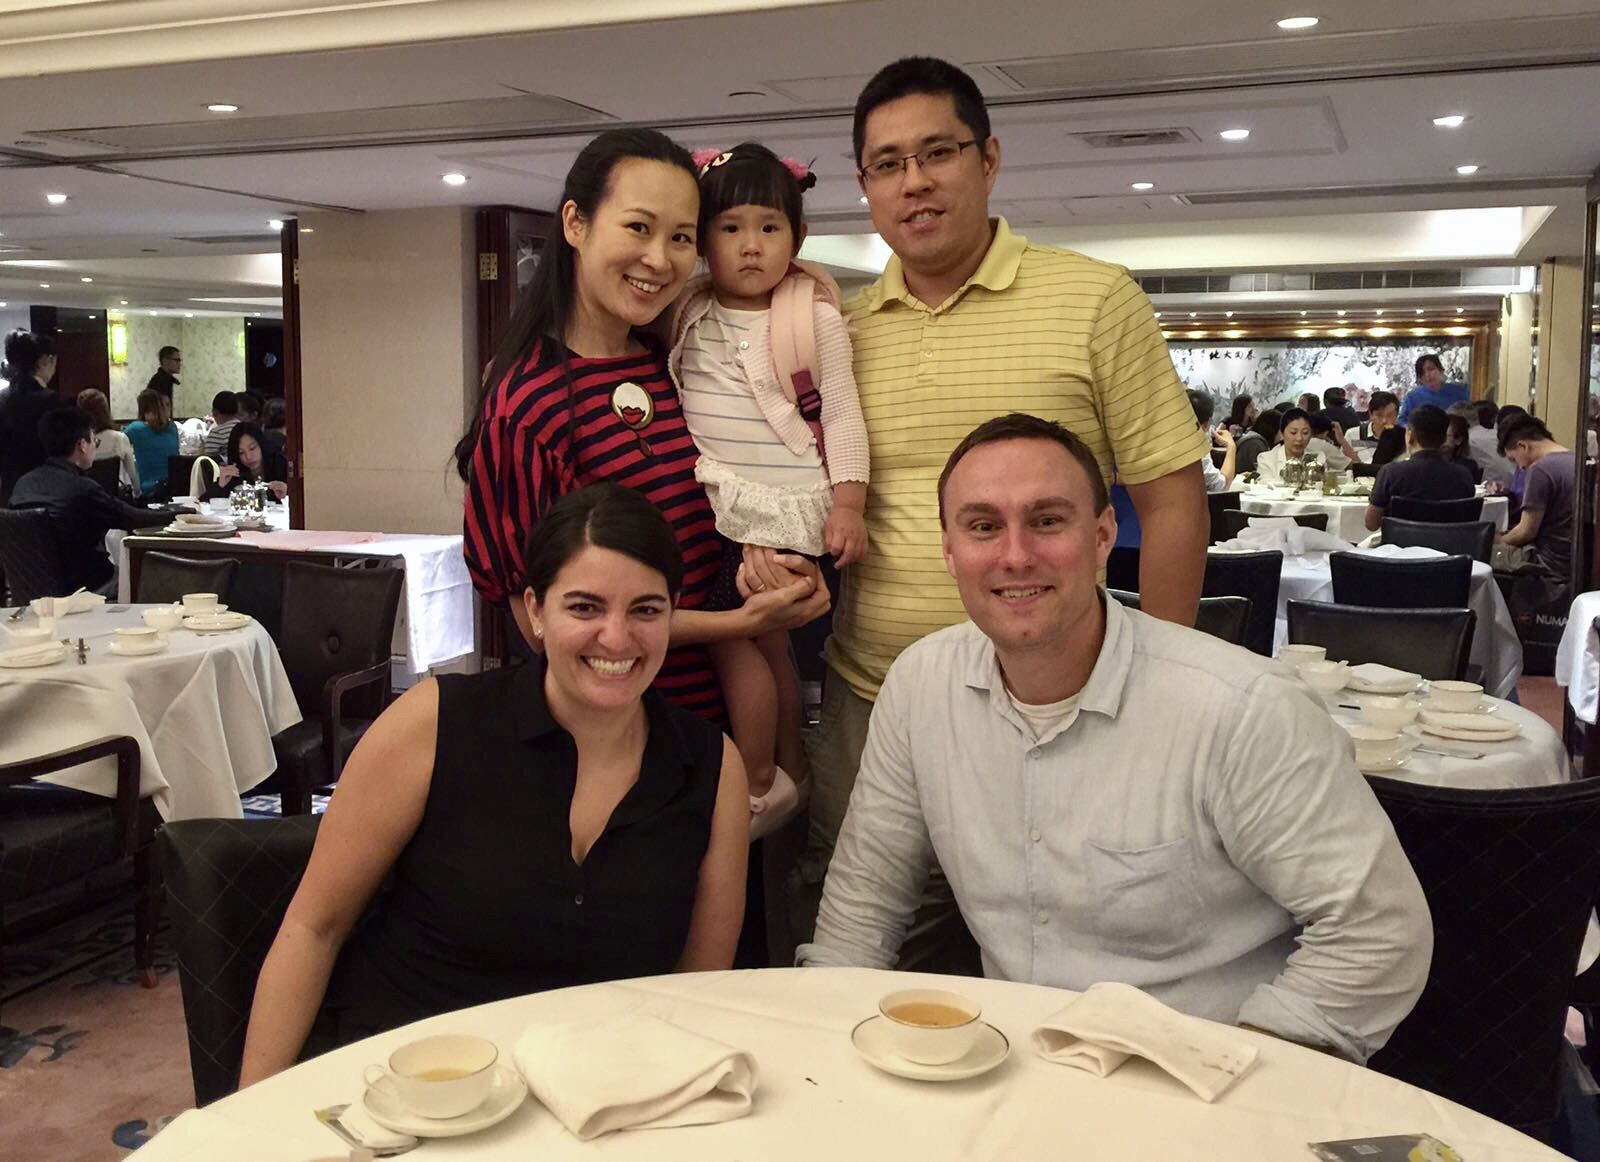 Getting to meet up with one of Nicole's old friends (and make two new friends) while in Hong Kong :)